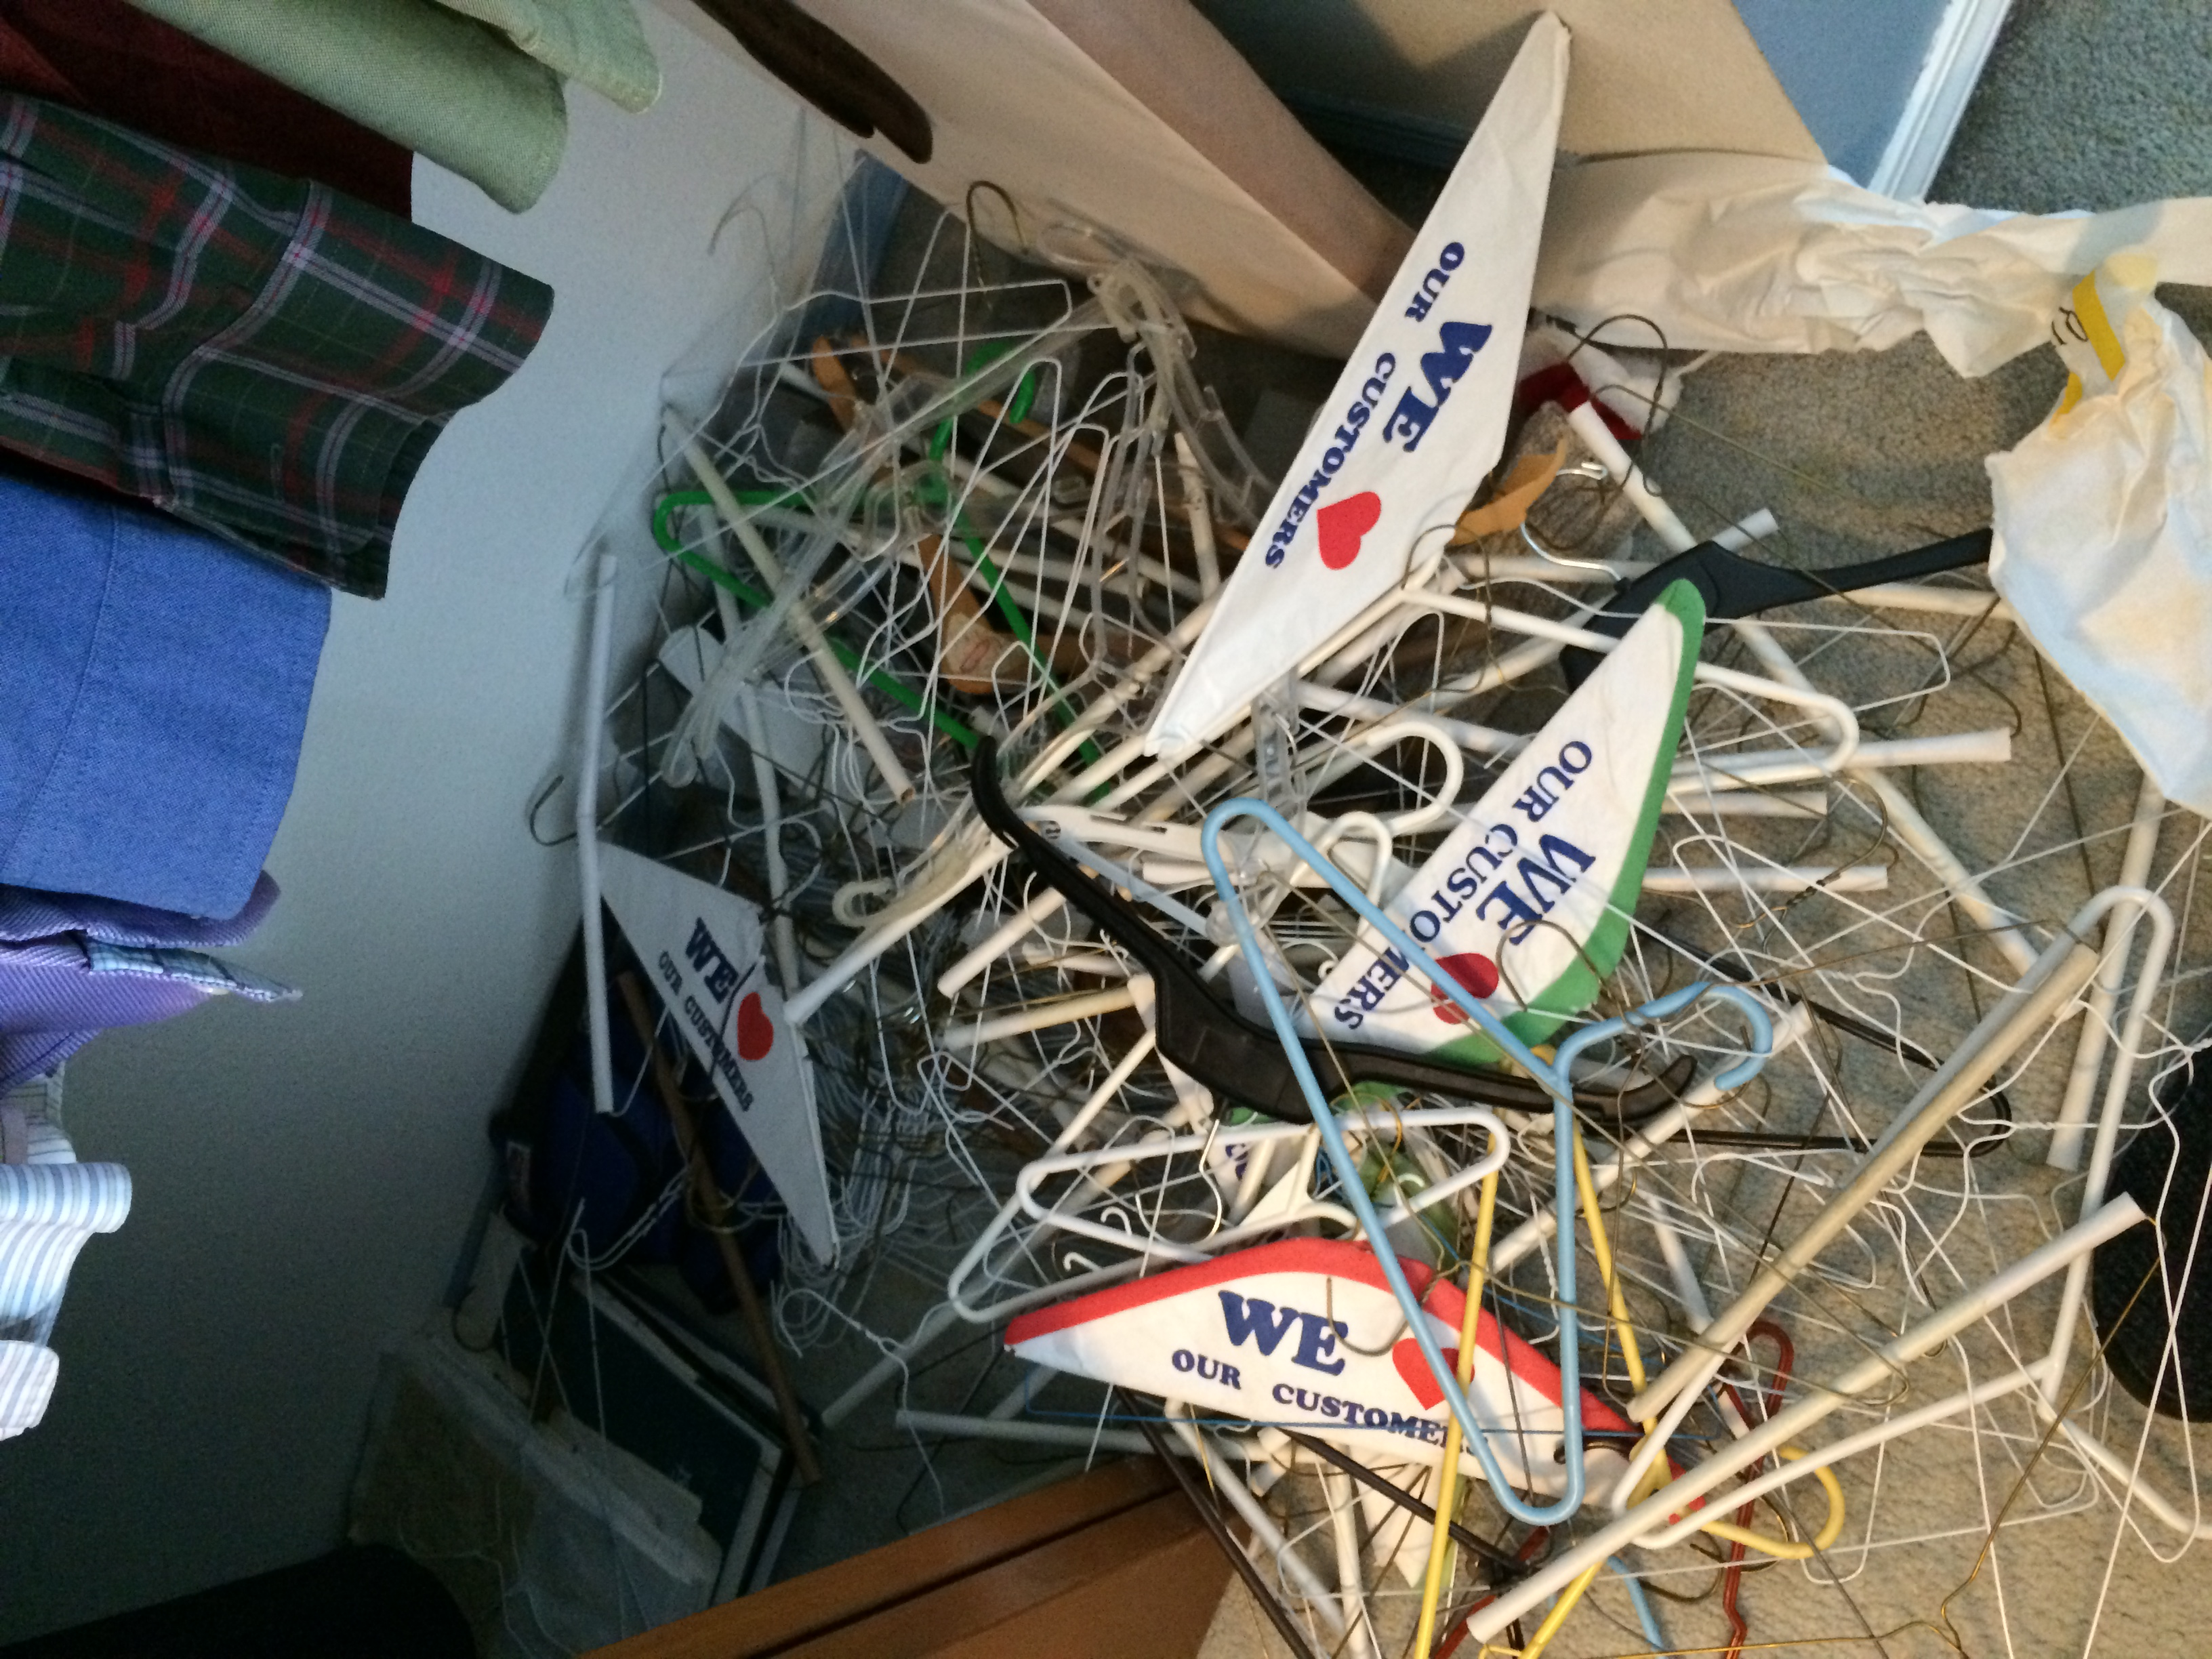 My dry cleaner was keen to get these old hangers back! No worries about hangers in the landfills here!